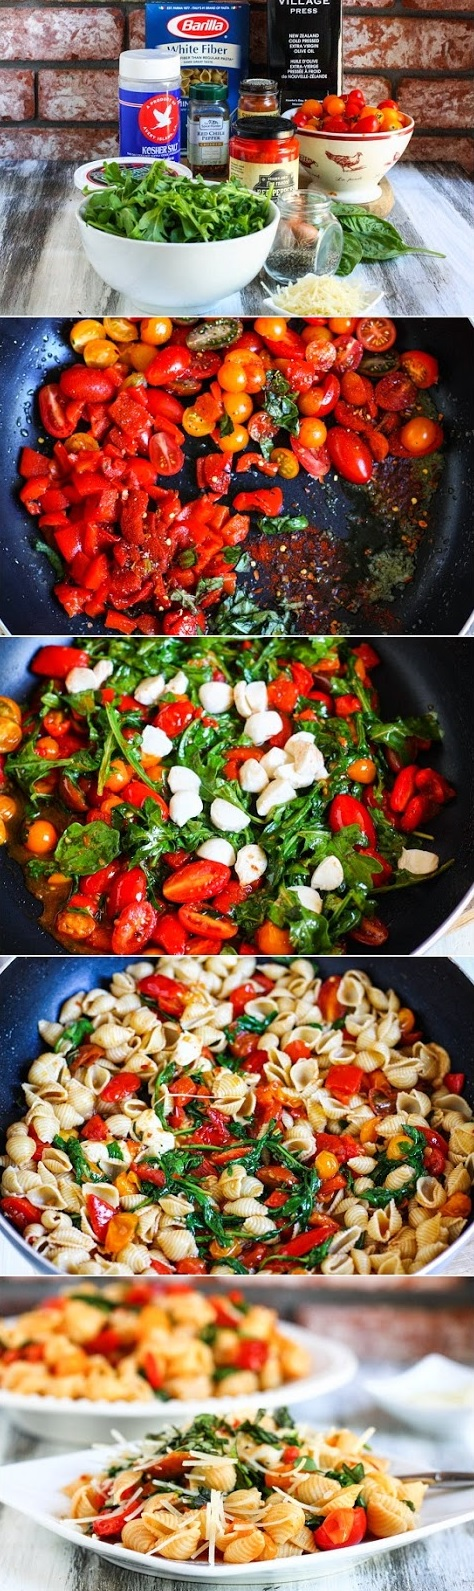 Quick & Easy Recipes – Tomato, Roasted Pepper and Arugula Pasta